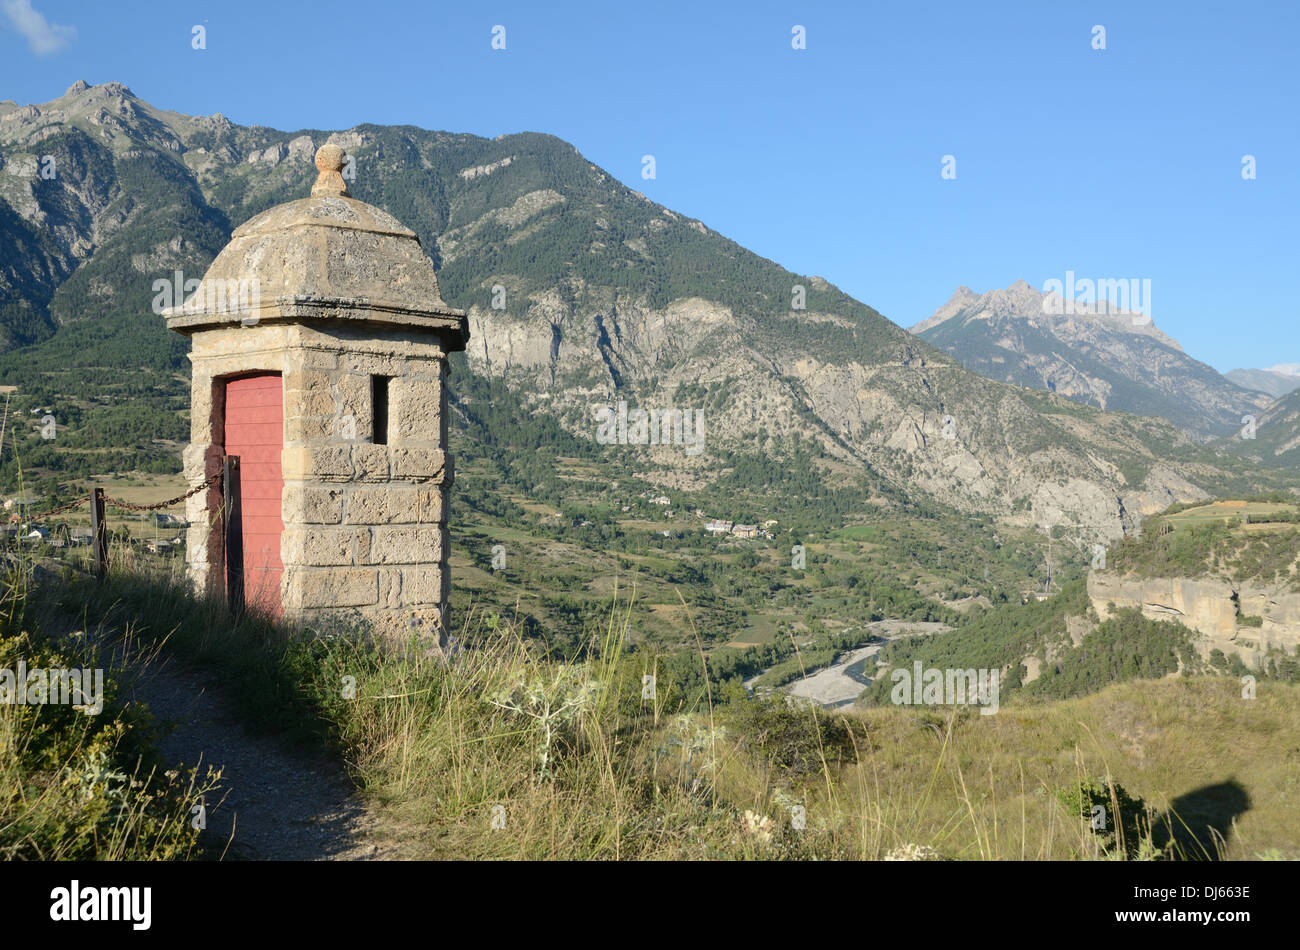 Vauban Look-Out Watch-tower or Observation Tower Mont-Dauphin Walled Military Town Hautes-Alpes France - Stock Image